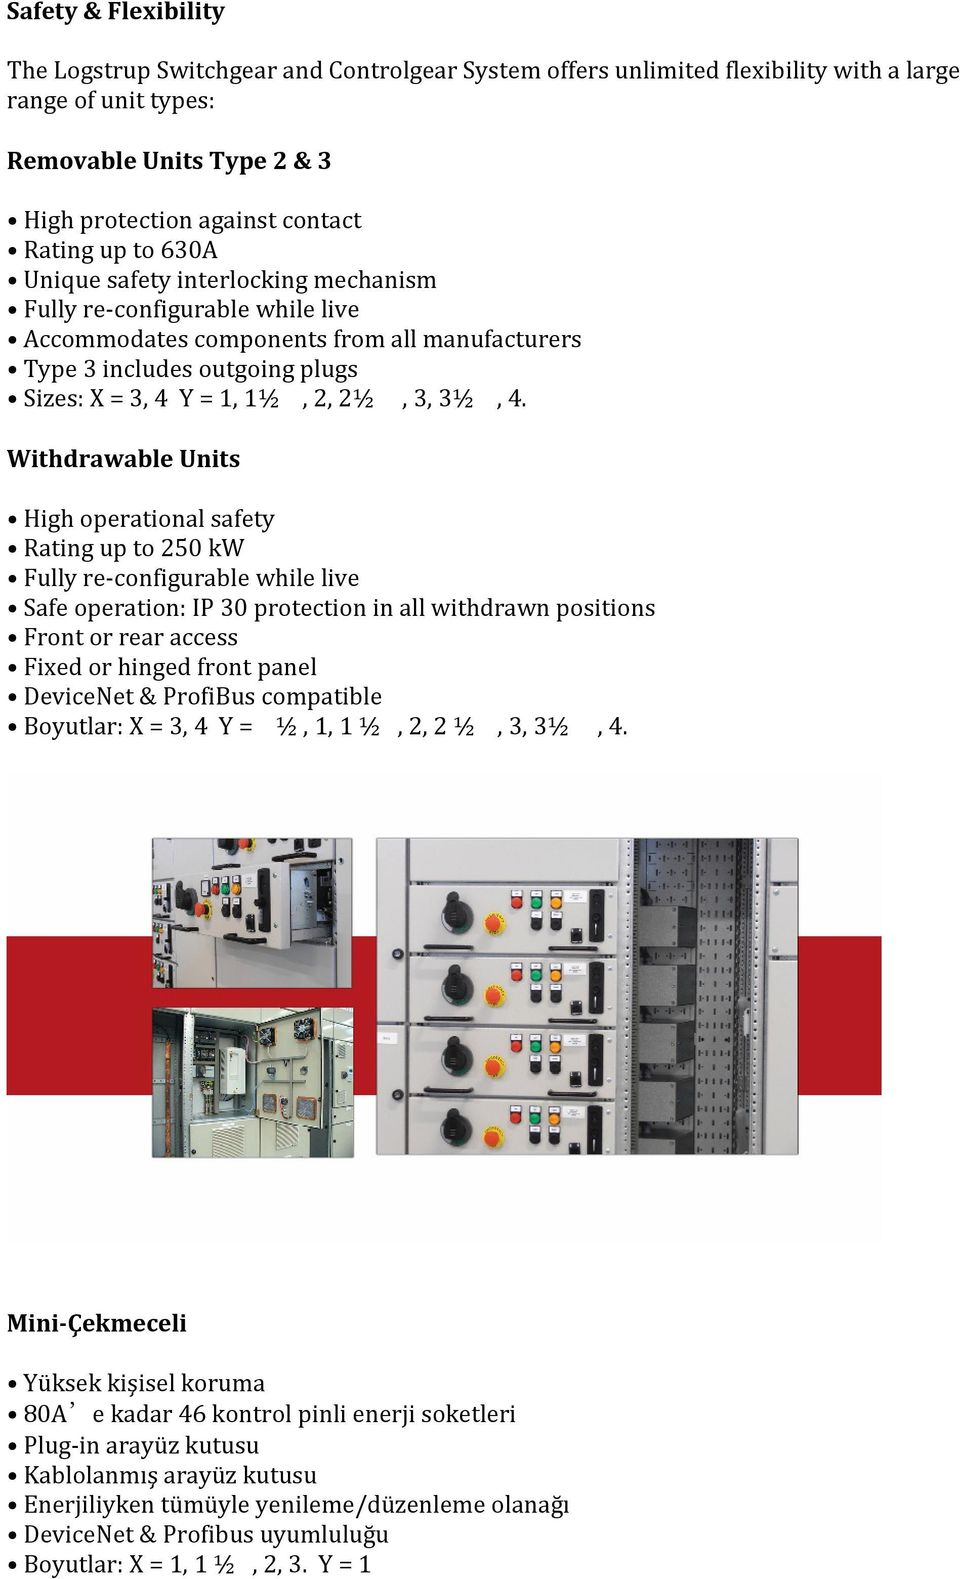 Withdrawable Units High operational safety Rating up to 250 kw Fully re-configurable while live Safe operation: IP 30 protection in all withdrawn positions Front or rear access Fixed or hinged front